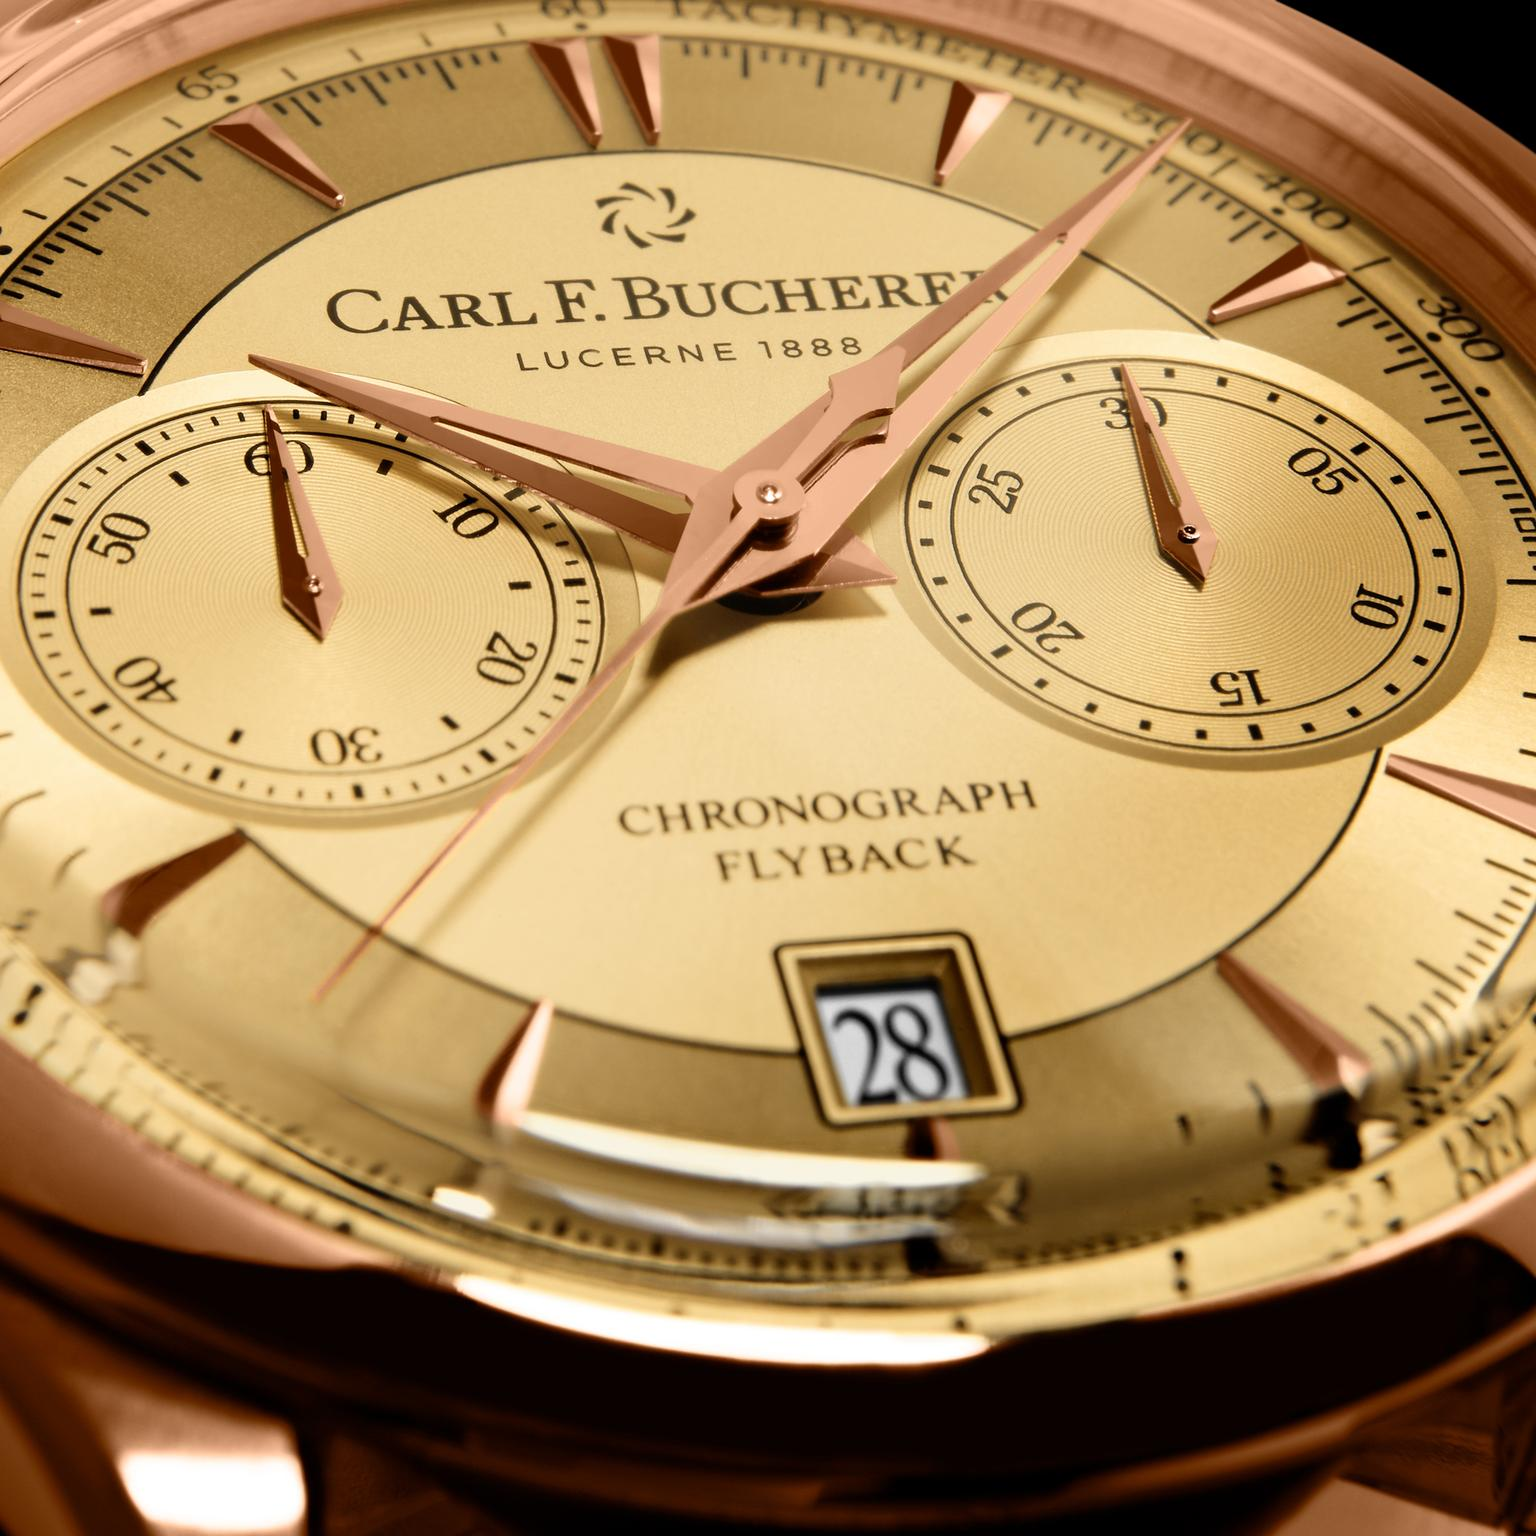 Back to the future with Carl F. Bucherer